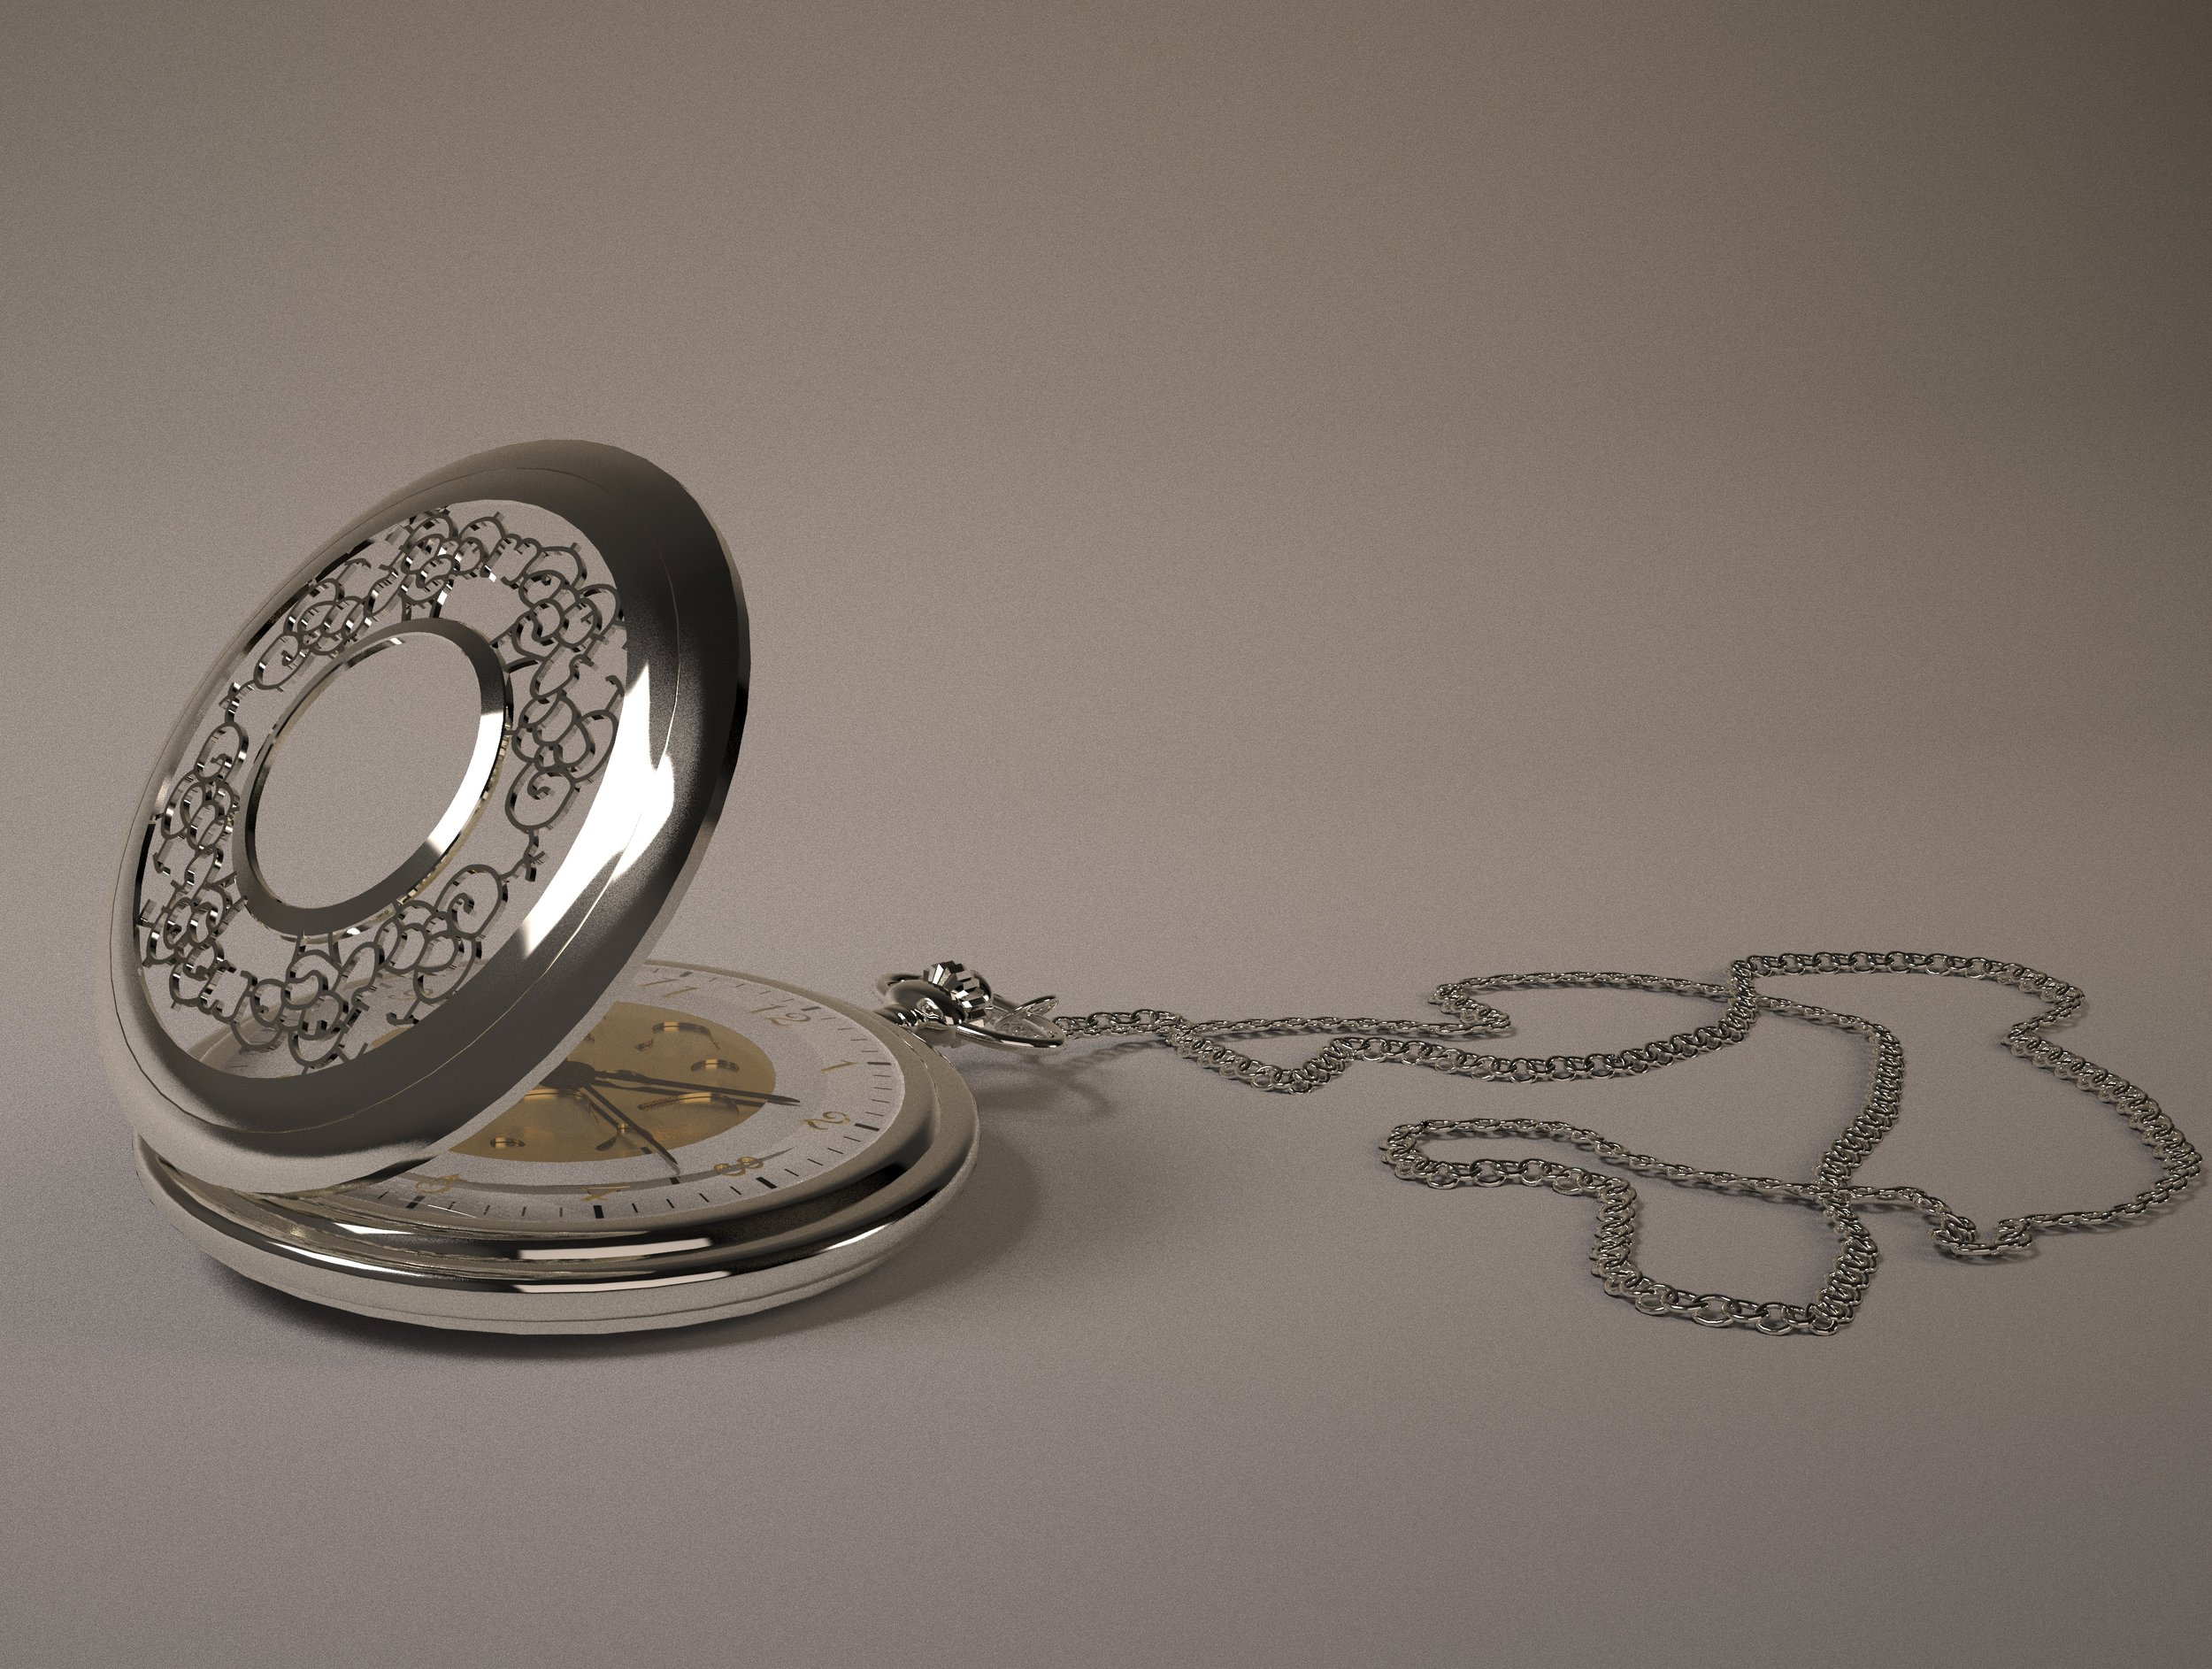 pocket watch2.2.jpg